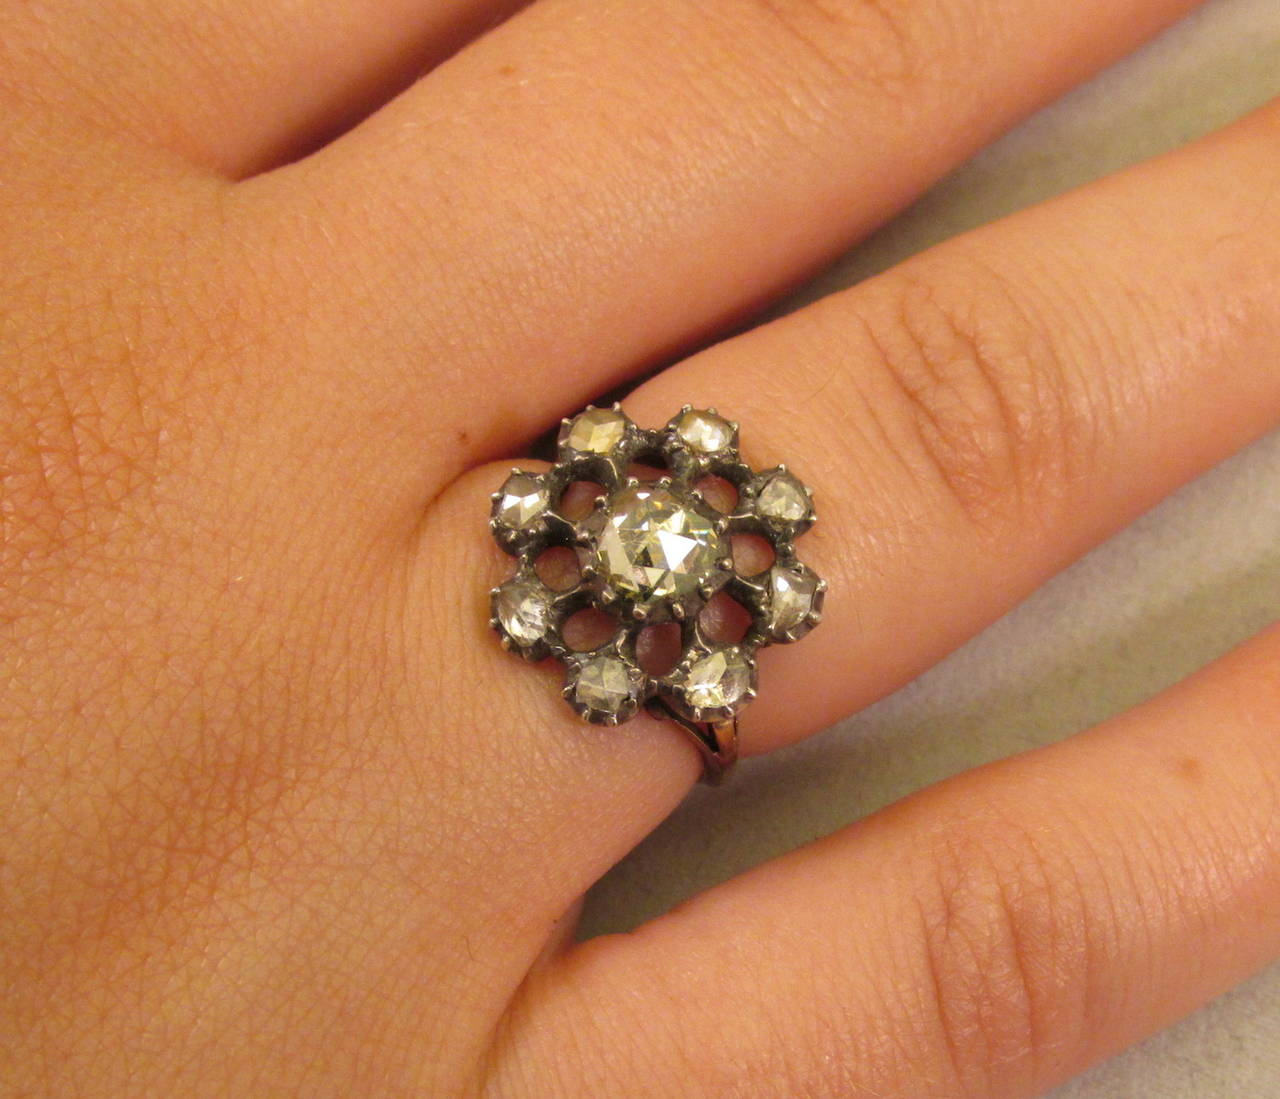 Dramatic Georgian rose diamond cluster ring set in silver with an 18K gold band. The center stone is a large Dutch crown rose diamond. The cluster ring head is almost .75 inches in diameter, large and imposing. The ring is size 6 1/4 and can be